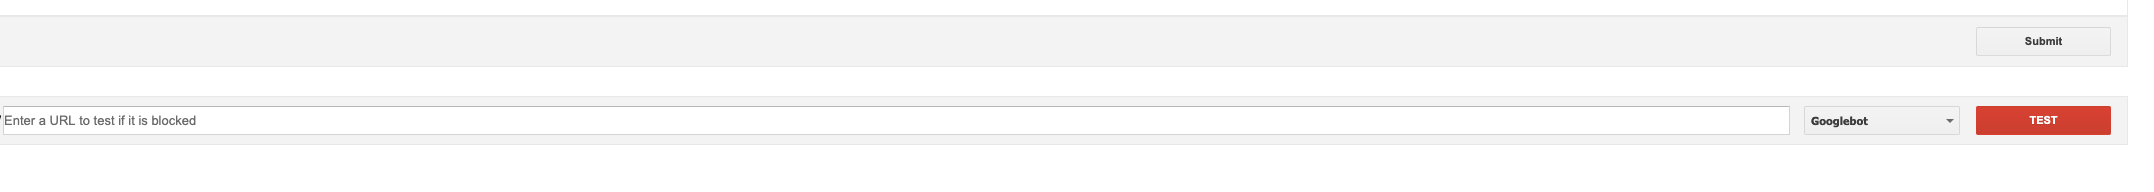 google search console tester tool for testing the robots.txt file of a site